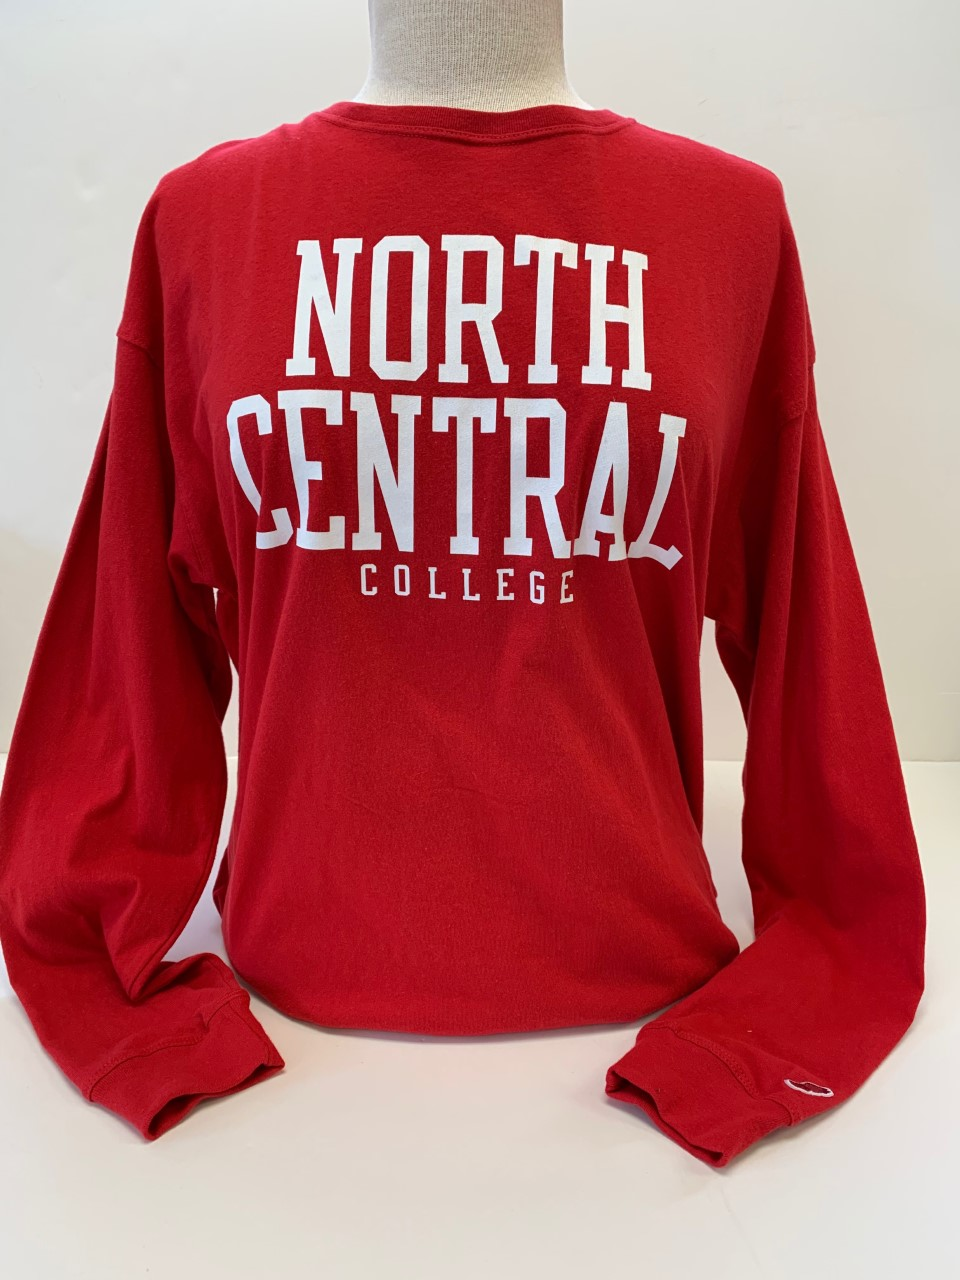 Image for the North Central College Clothesline Cotton Long Sleeve Tee w/School Name by League product